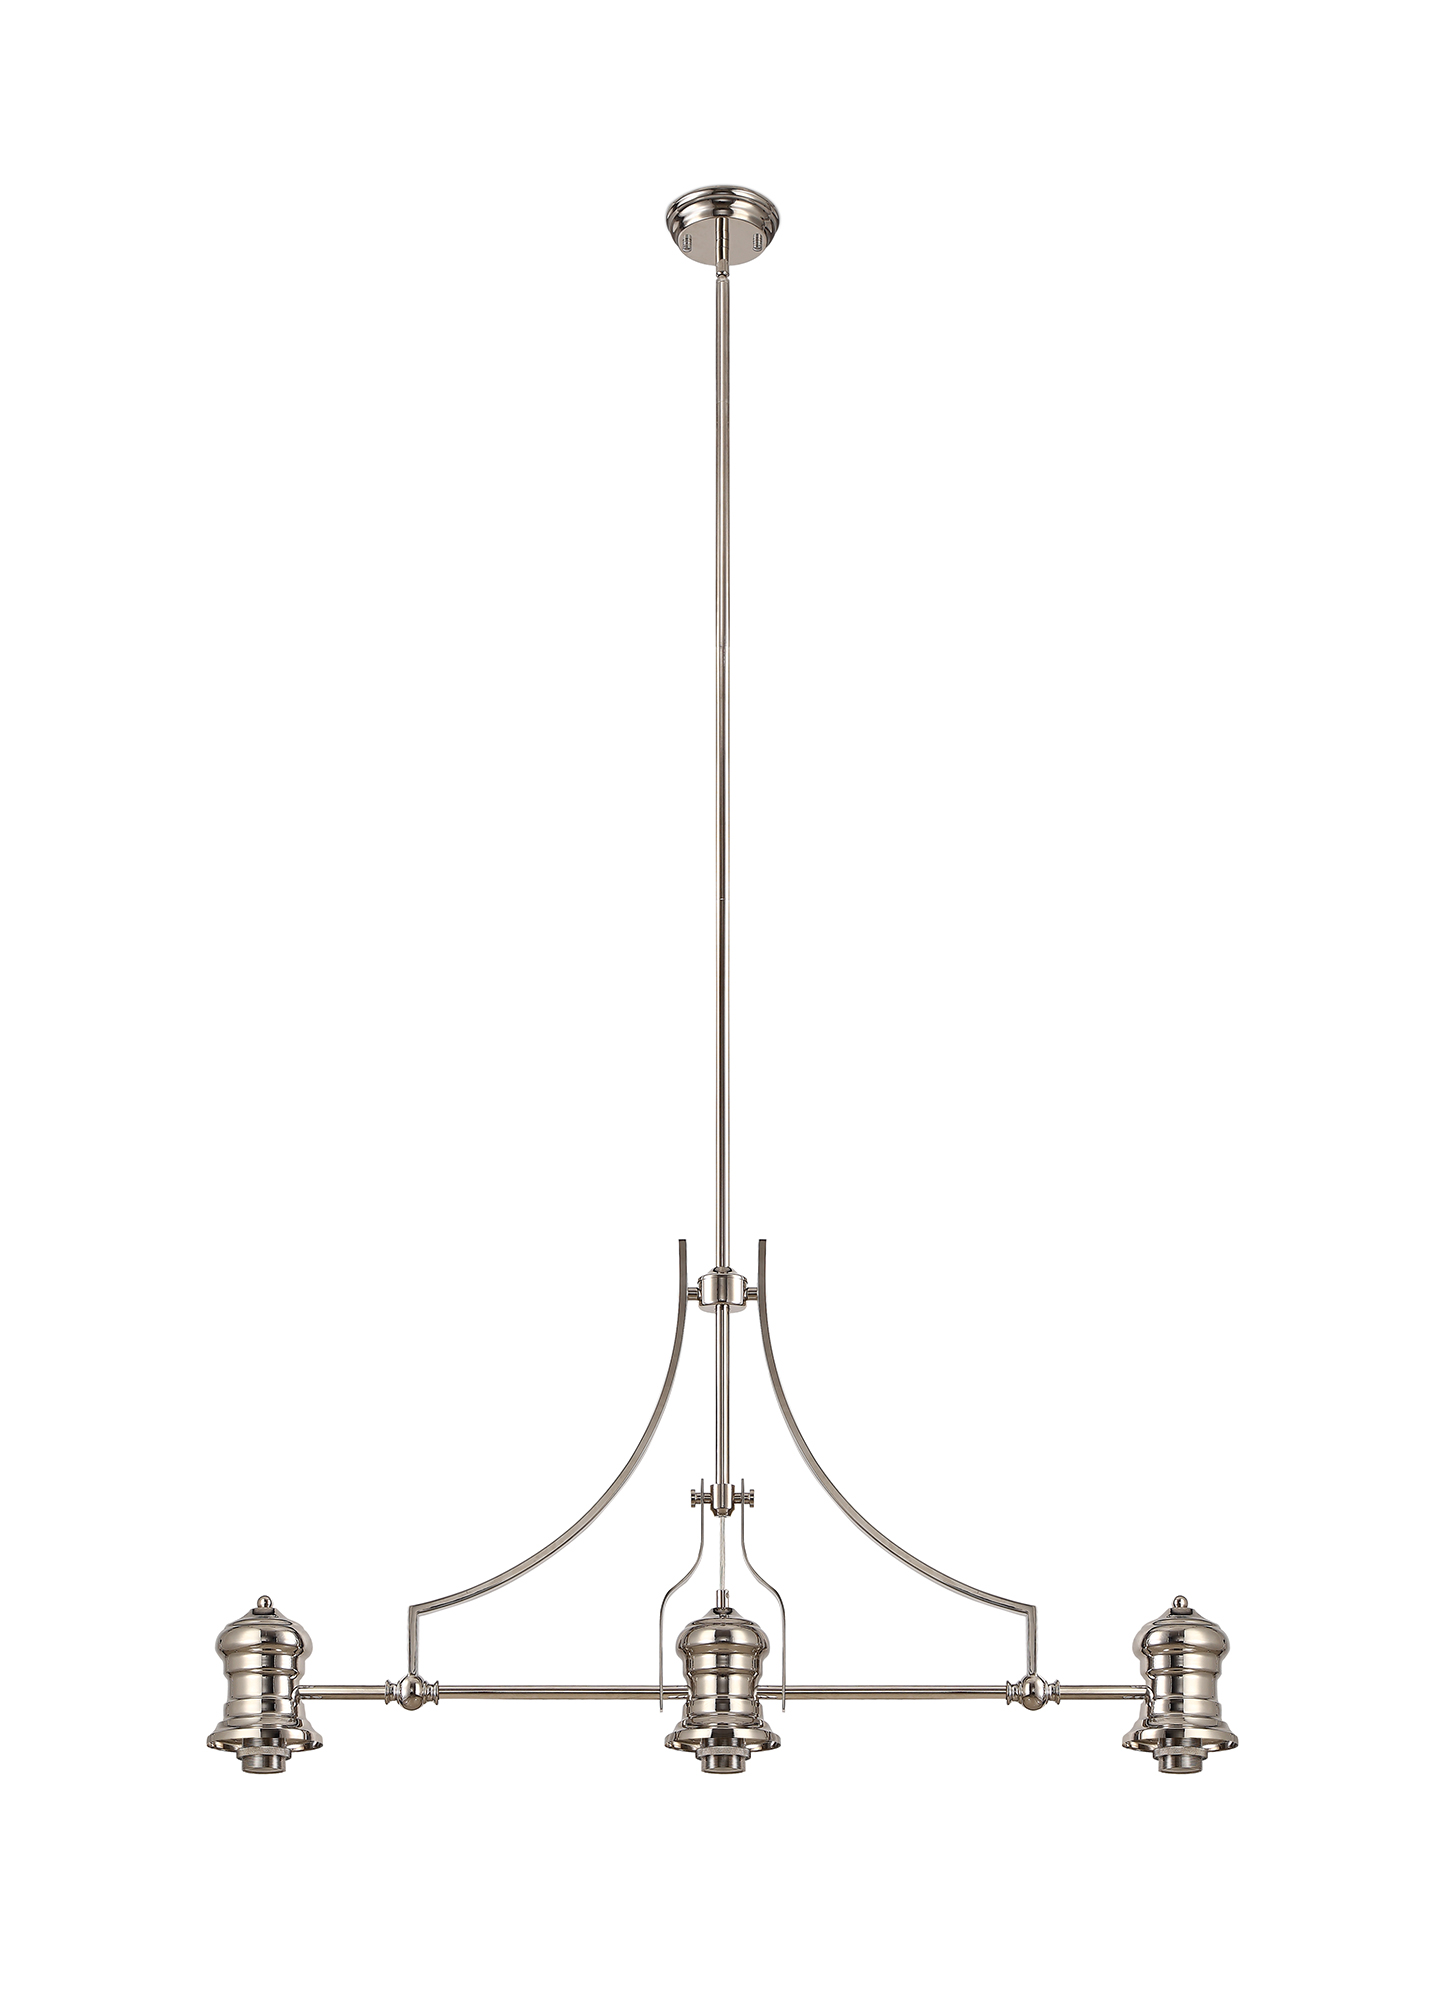 Linear Pendant With 38cm Patterned Round Shade, 3 x E27